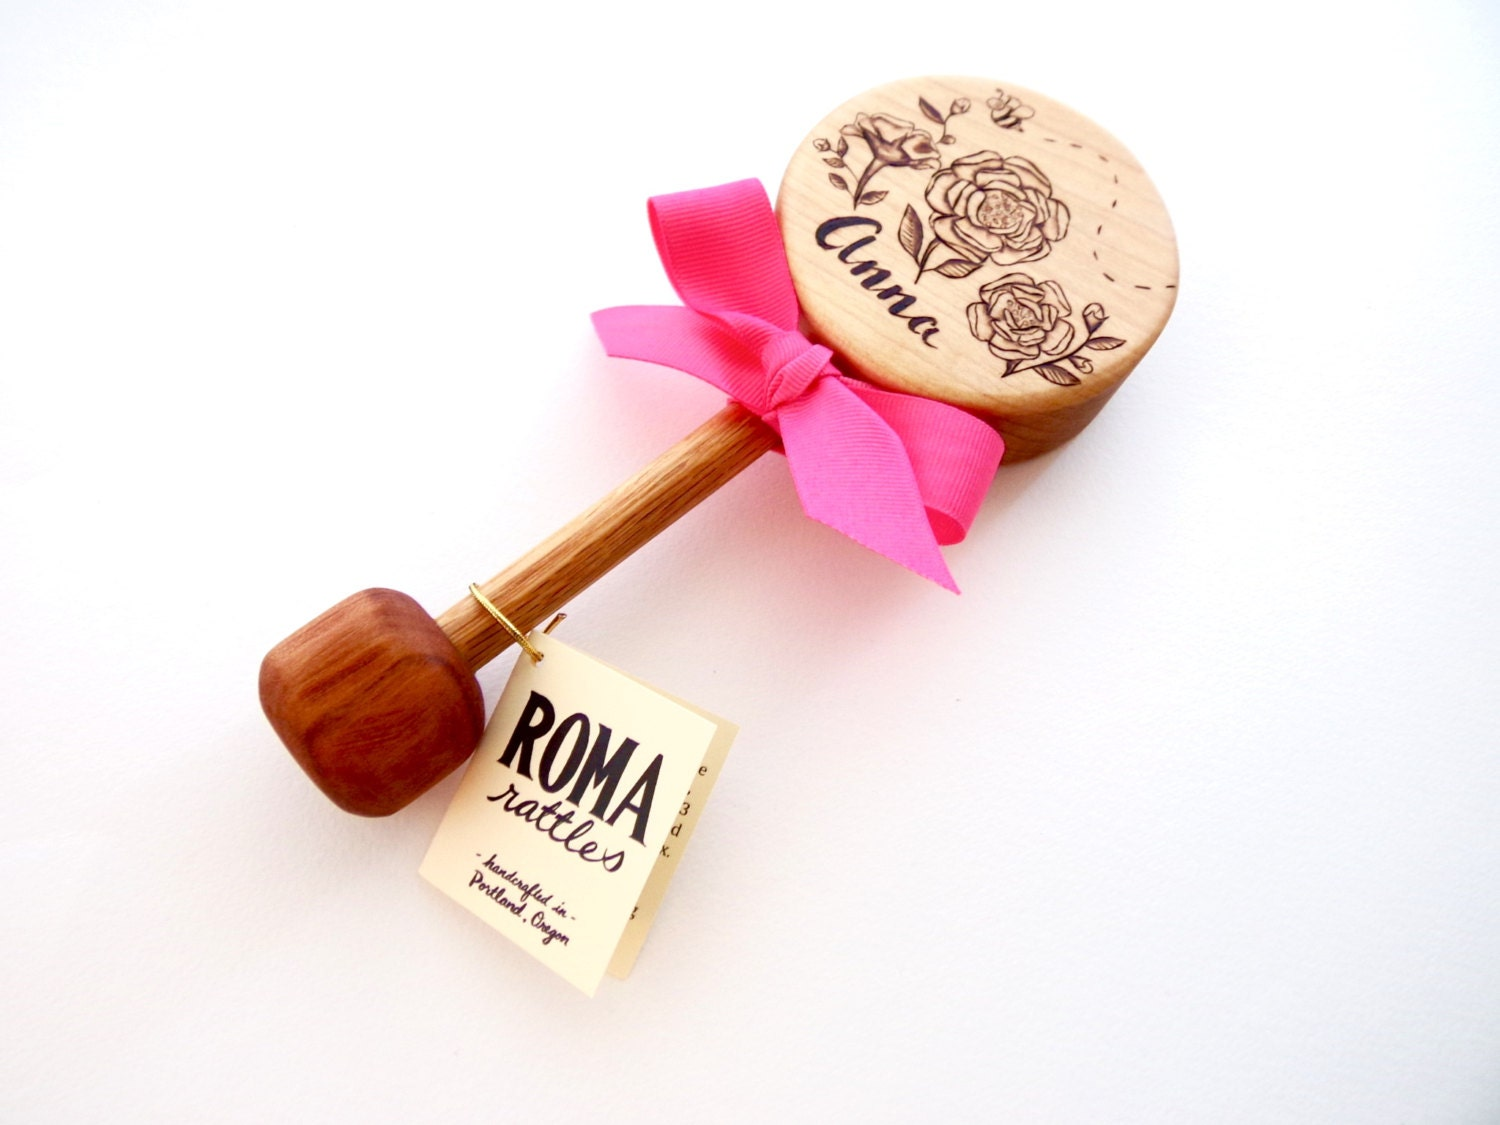 Wooden baby gifts ireland personalised new baby present christening personalized baby gift custom rose wooden rattle negle Image collections